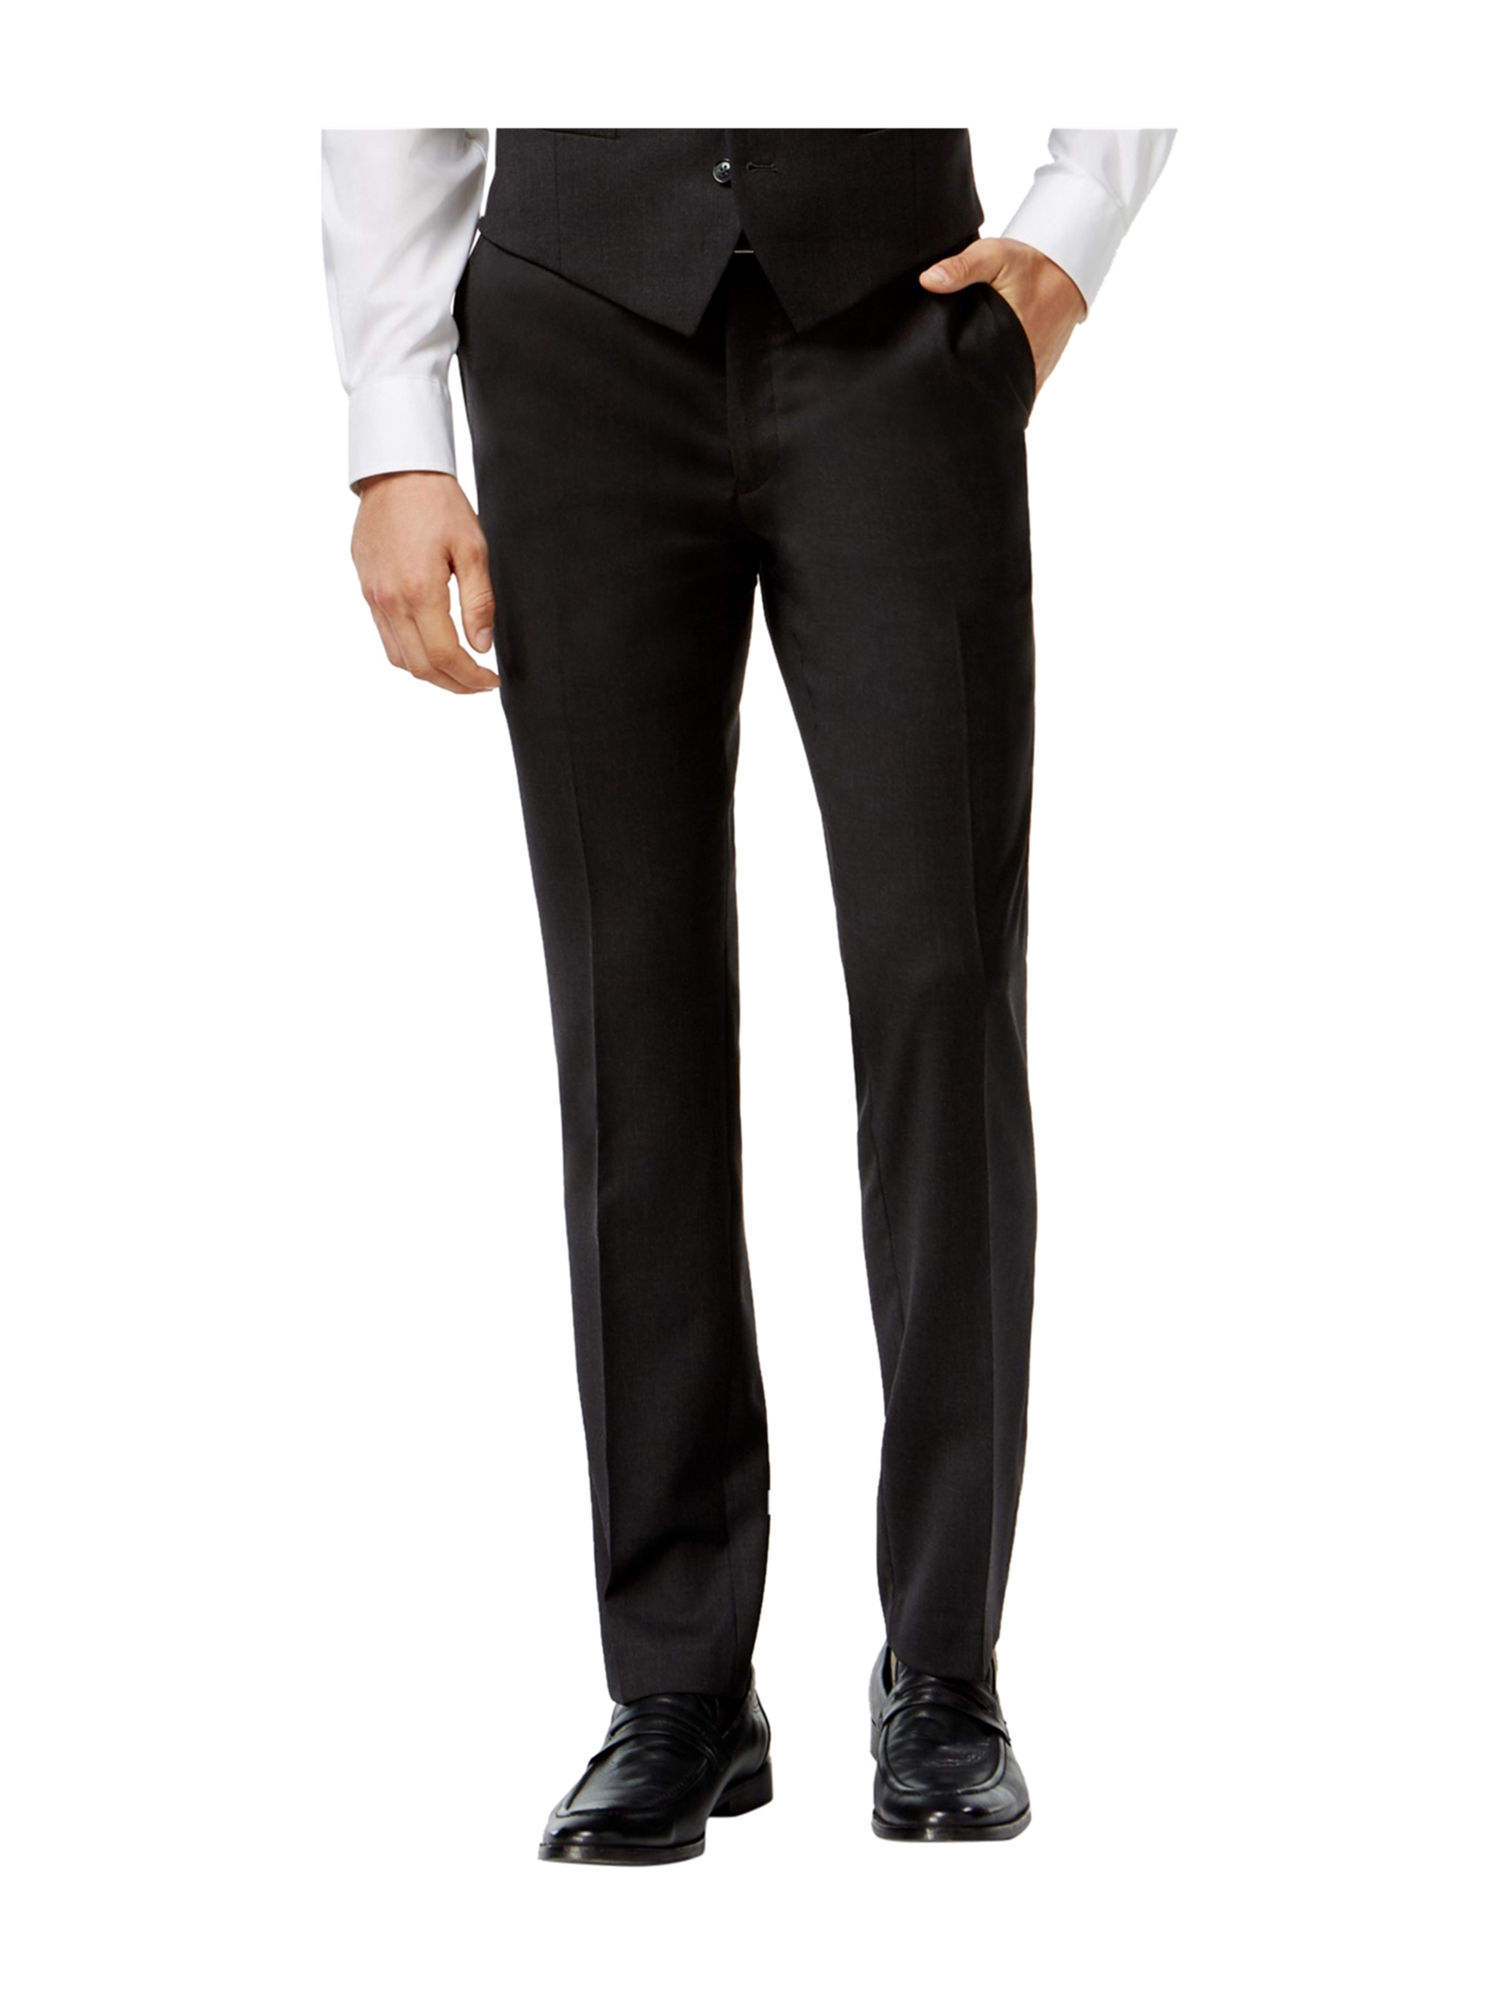 bar III Mens Textured Dress Slacks charcoal 36x34